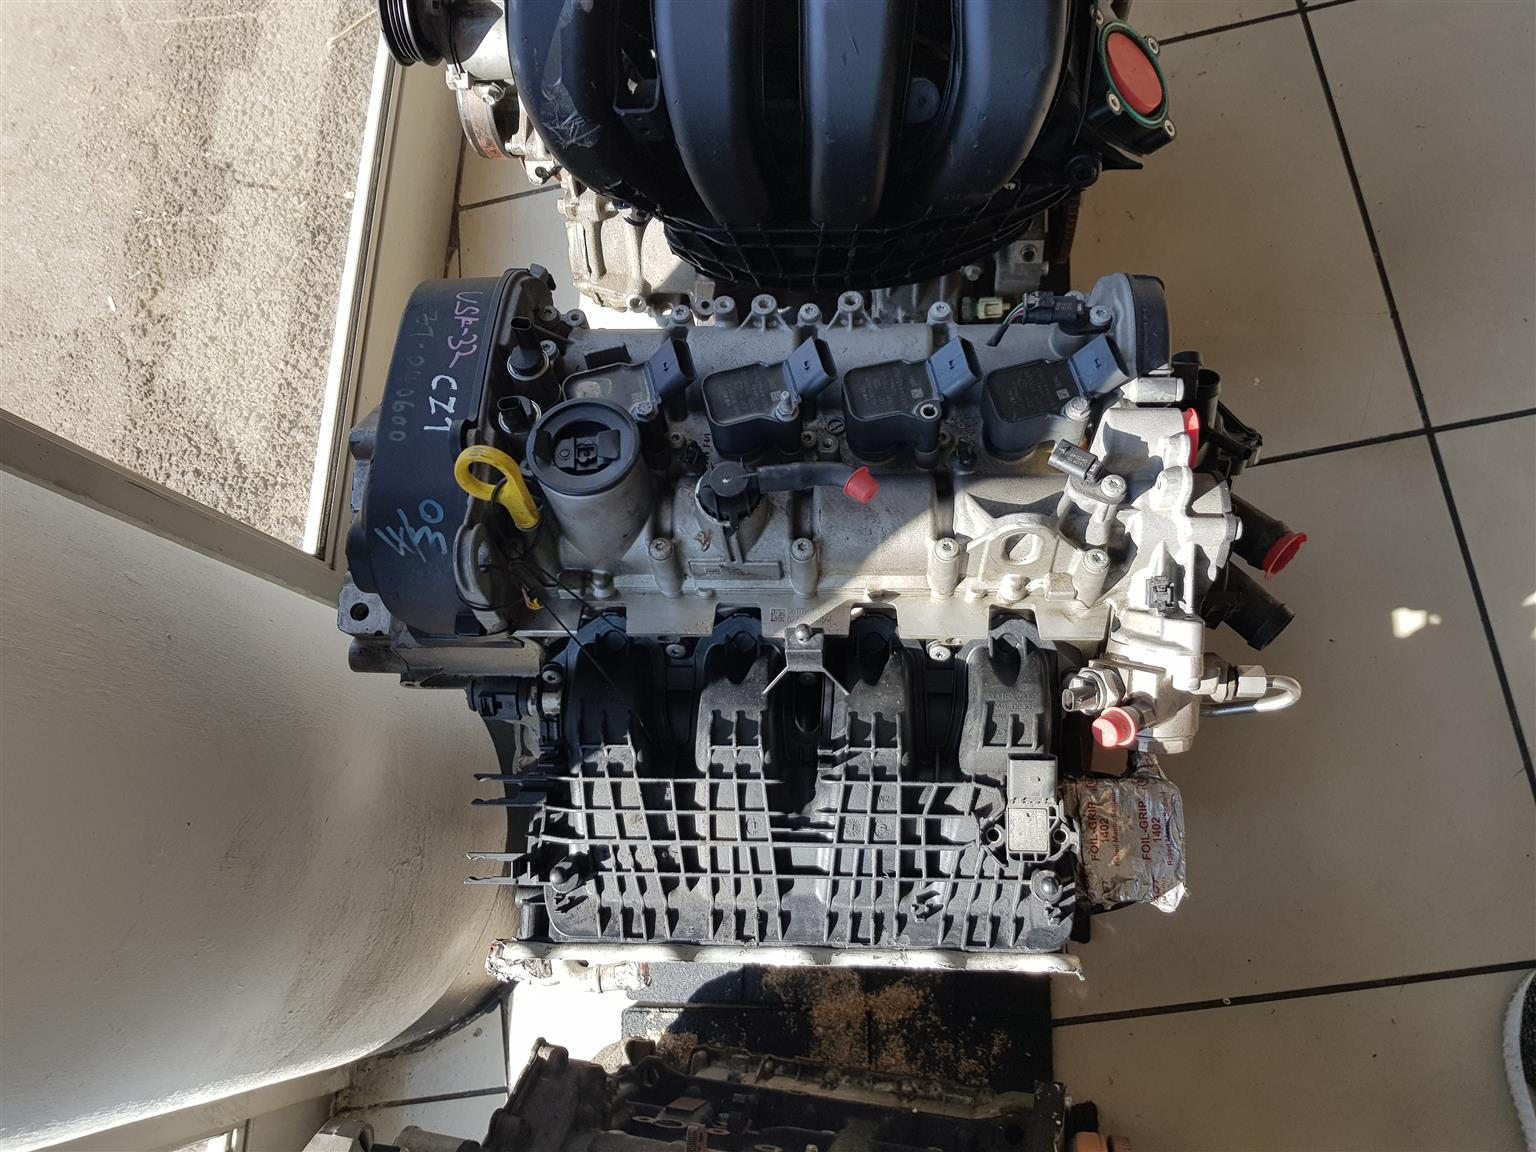 VW 1.4 TSI (CZT) HEAD BLOCK AND SUMP (NEW) FOR SALE